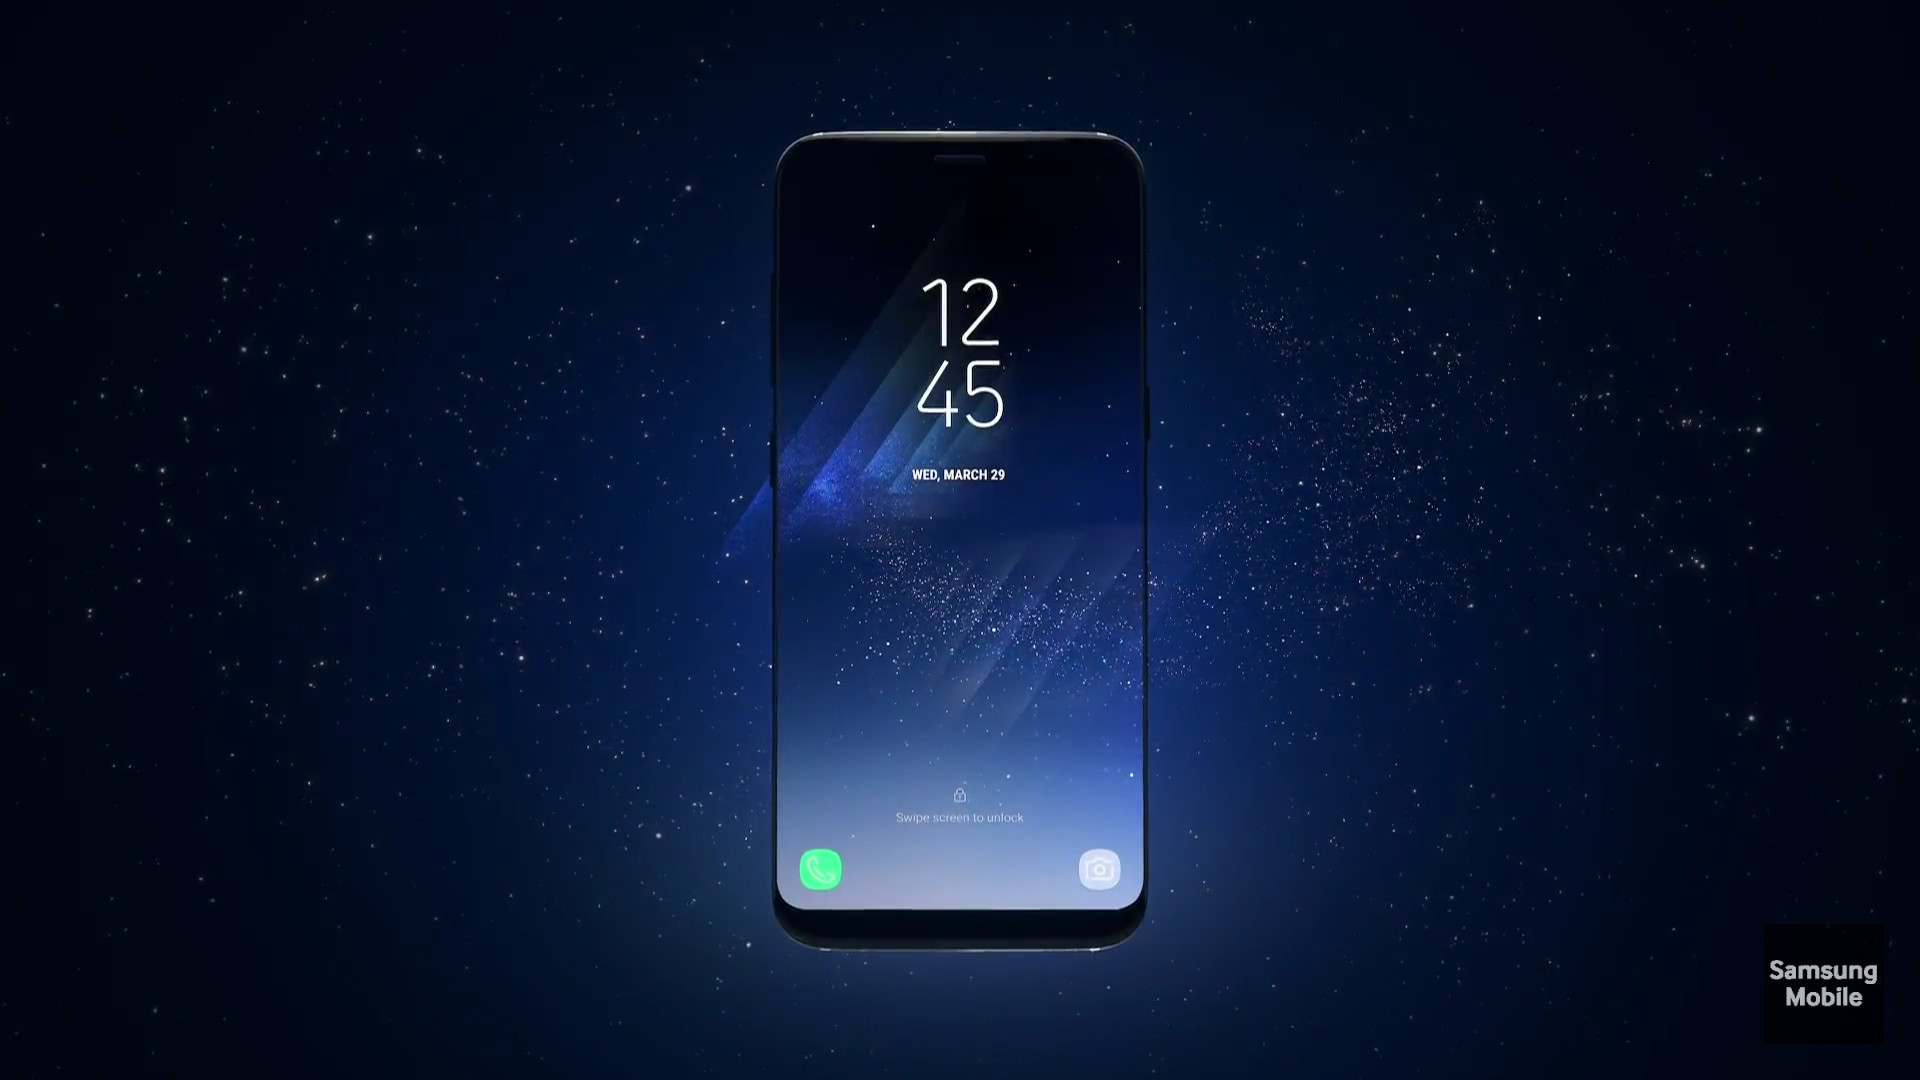 Samsung Galaxy S9 will be unveiled next month - Here's